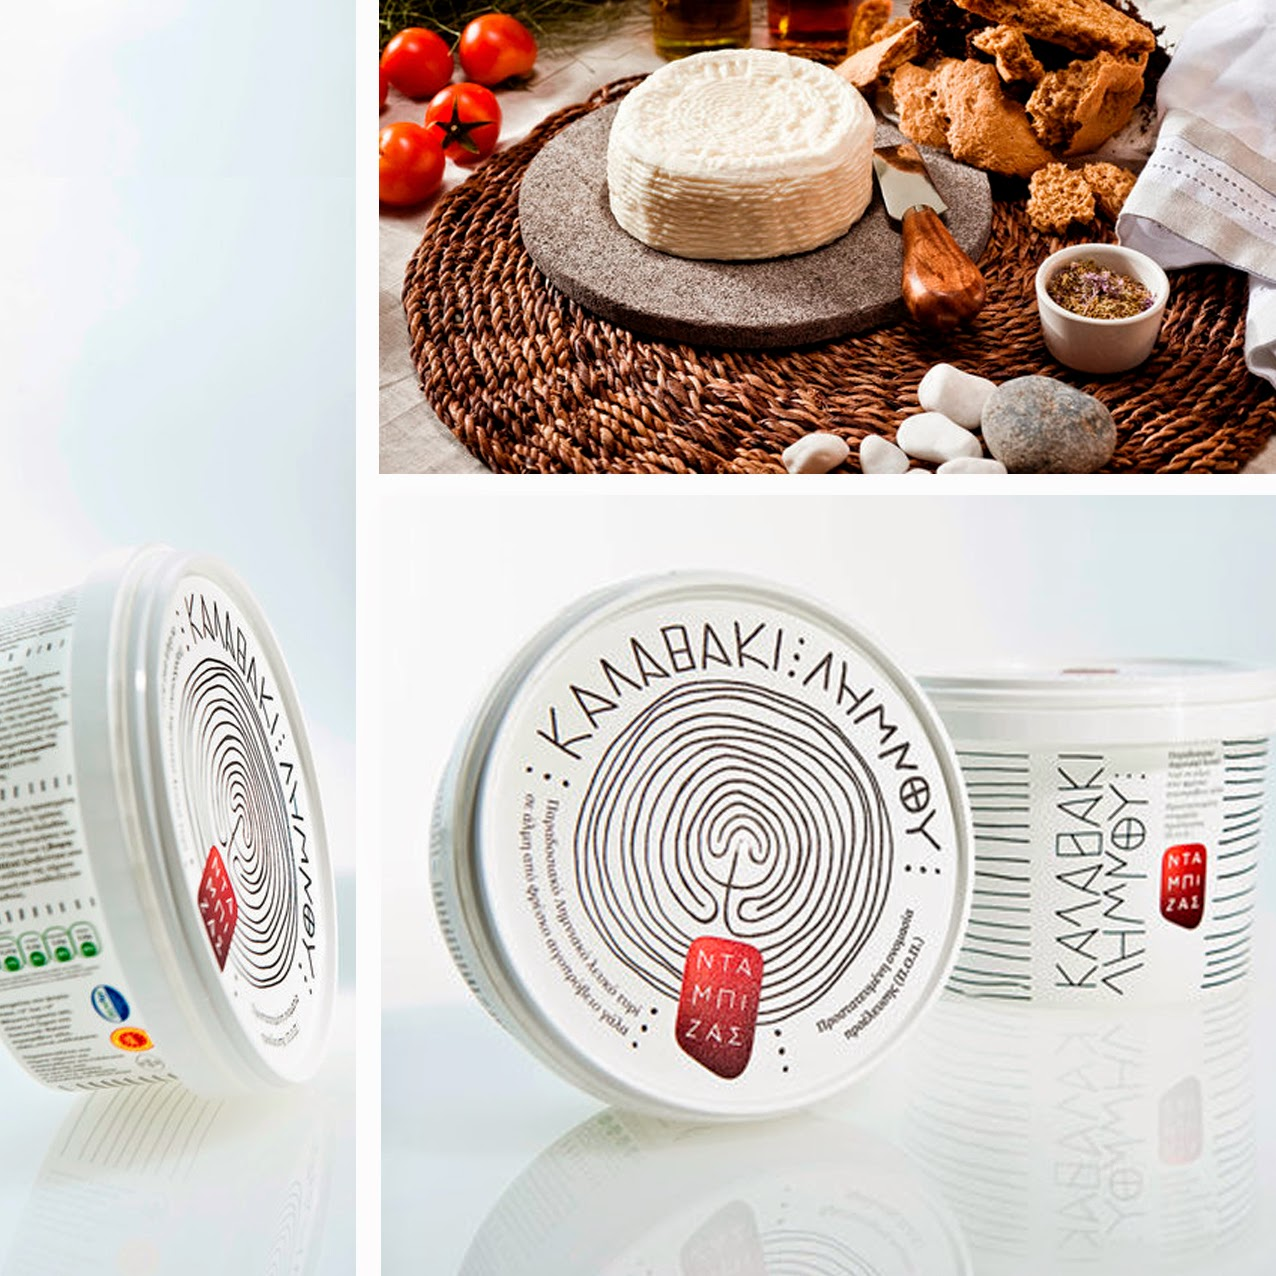 greek products packaging - The Round Button blog